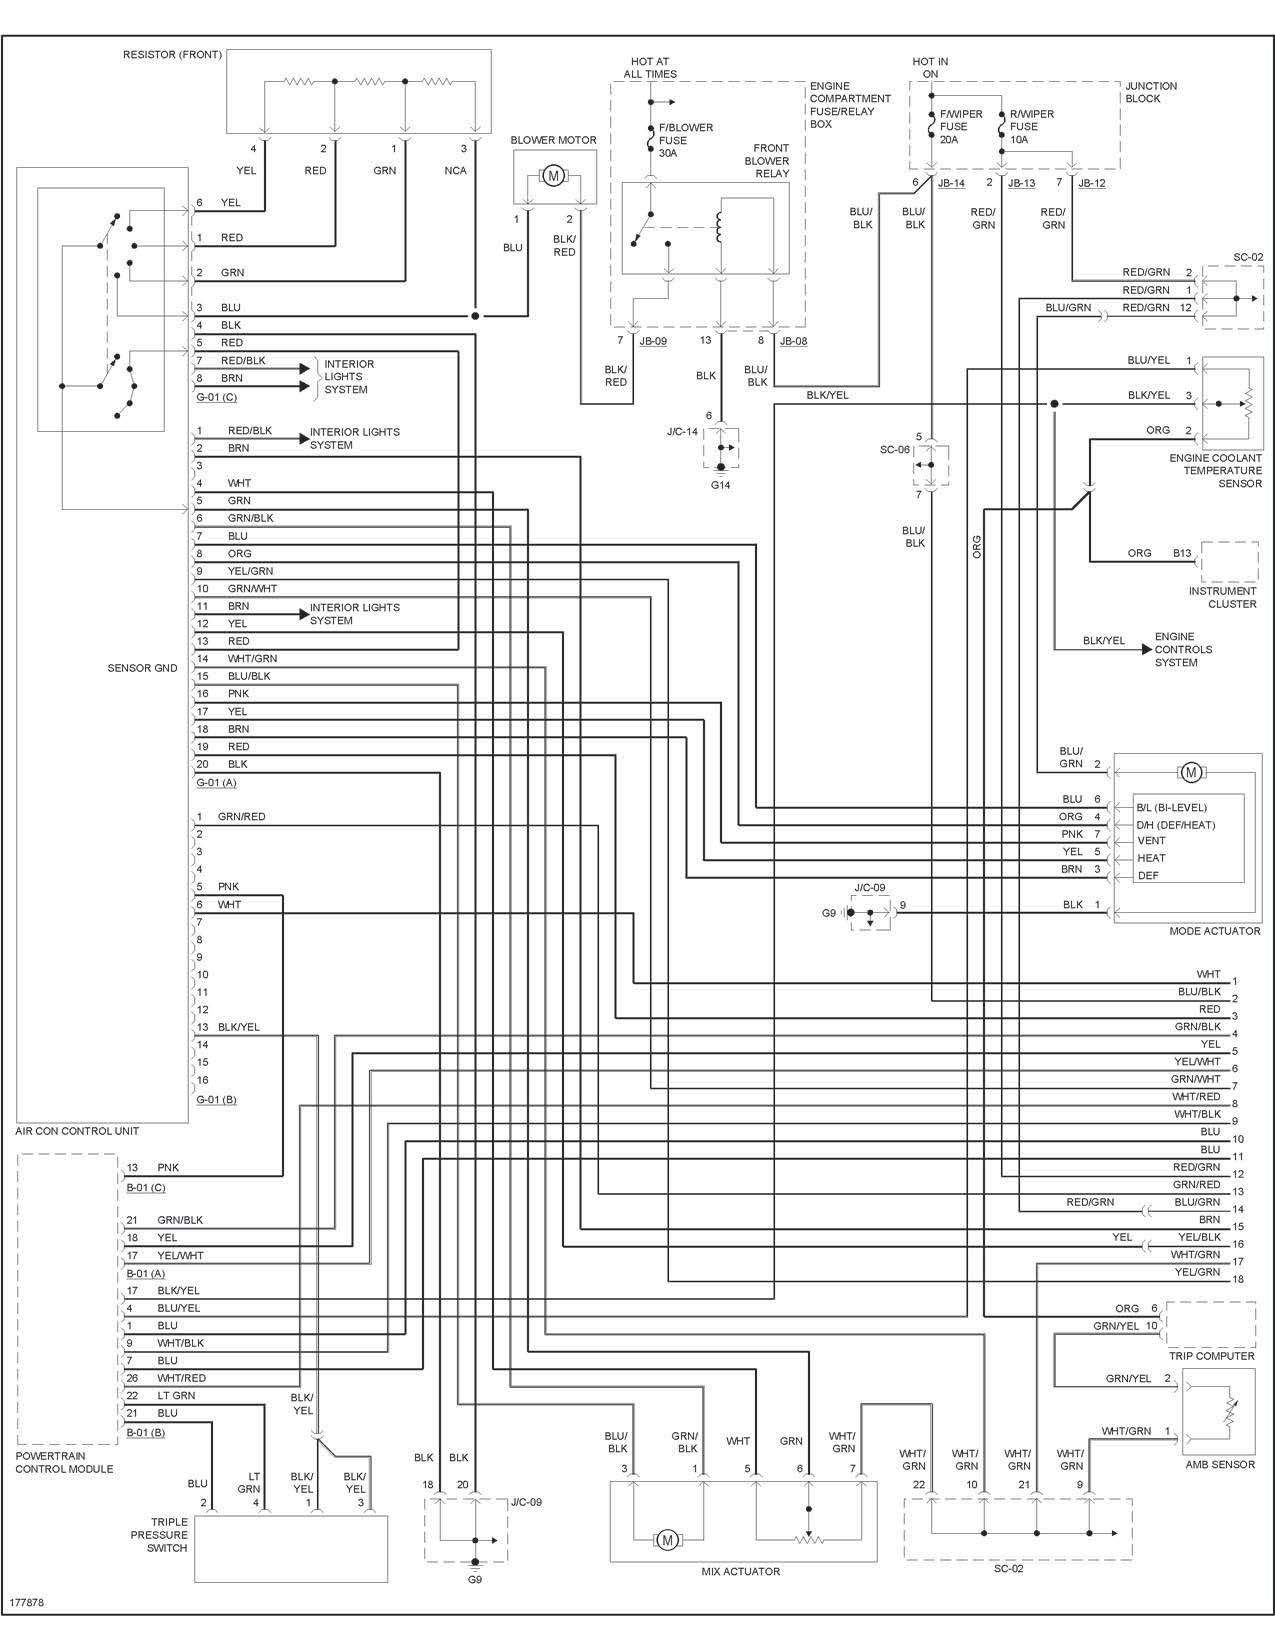 2011 kia sorento engine diagram example electrical wiring diagram u2022 rh 162 212 157 63 2004 Kia Sedona Engine Diagram Kia Sedona Starter Diagram